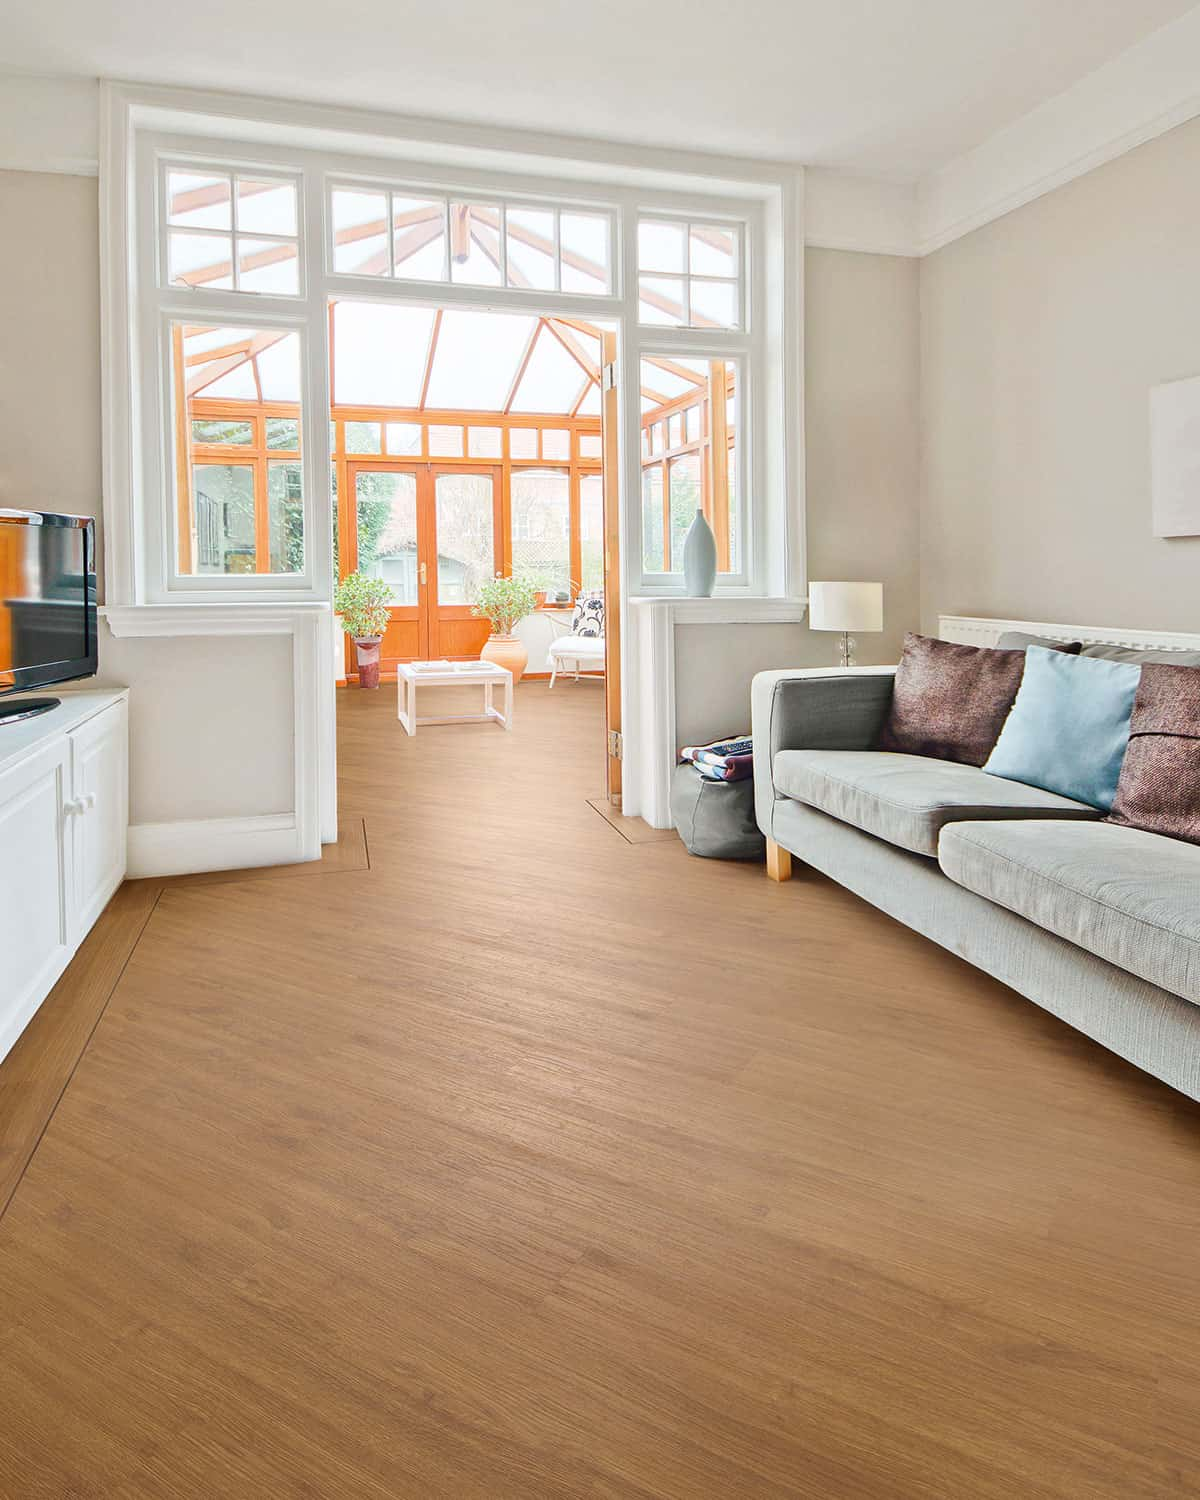 It's Time to Dive in the Vinyl Flooring Pros and Cons